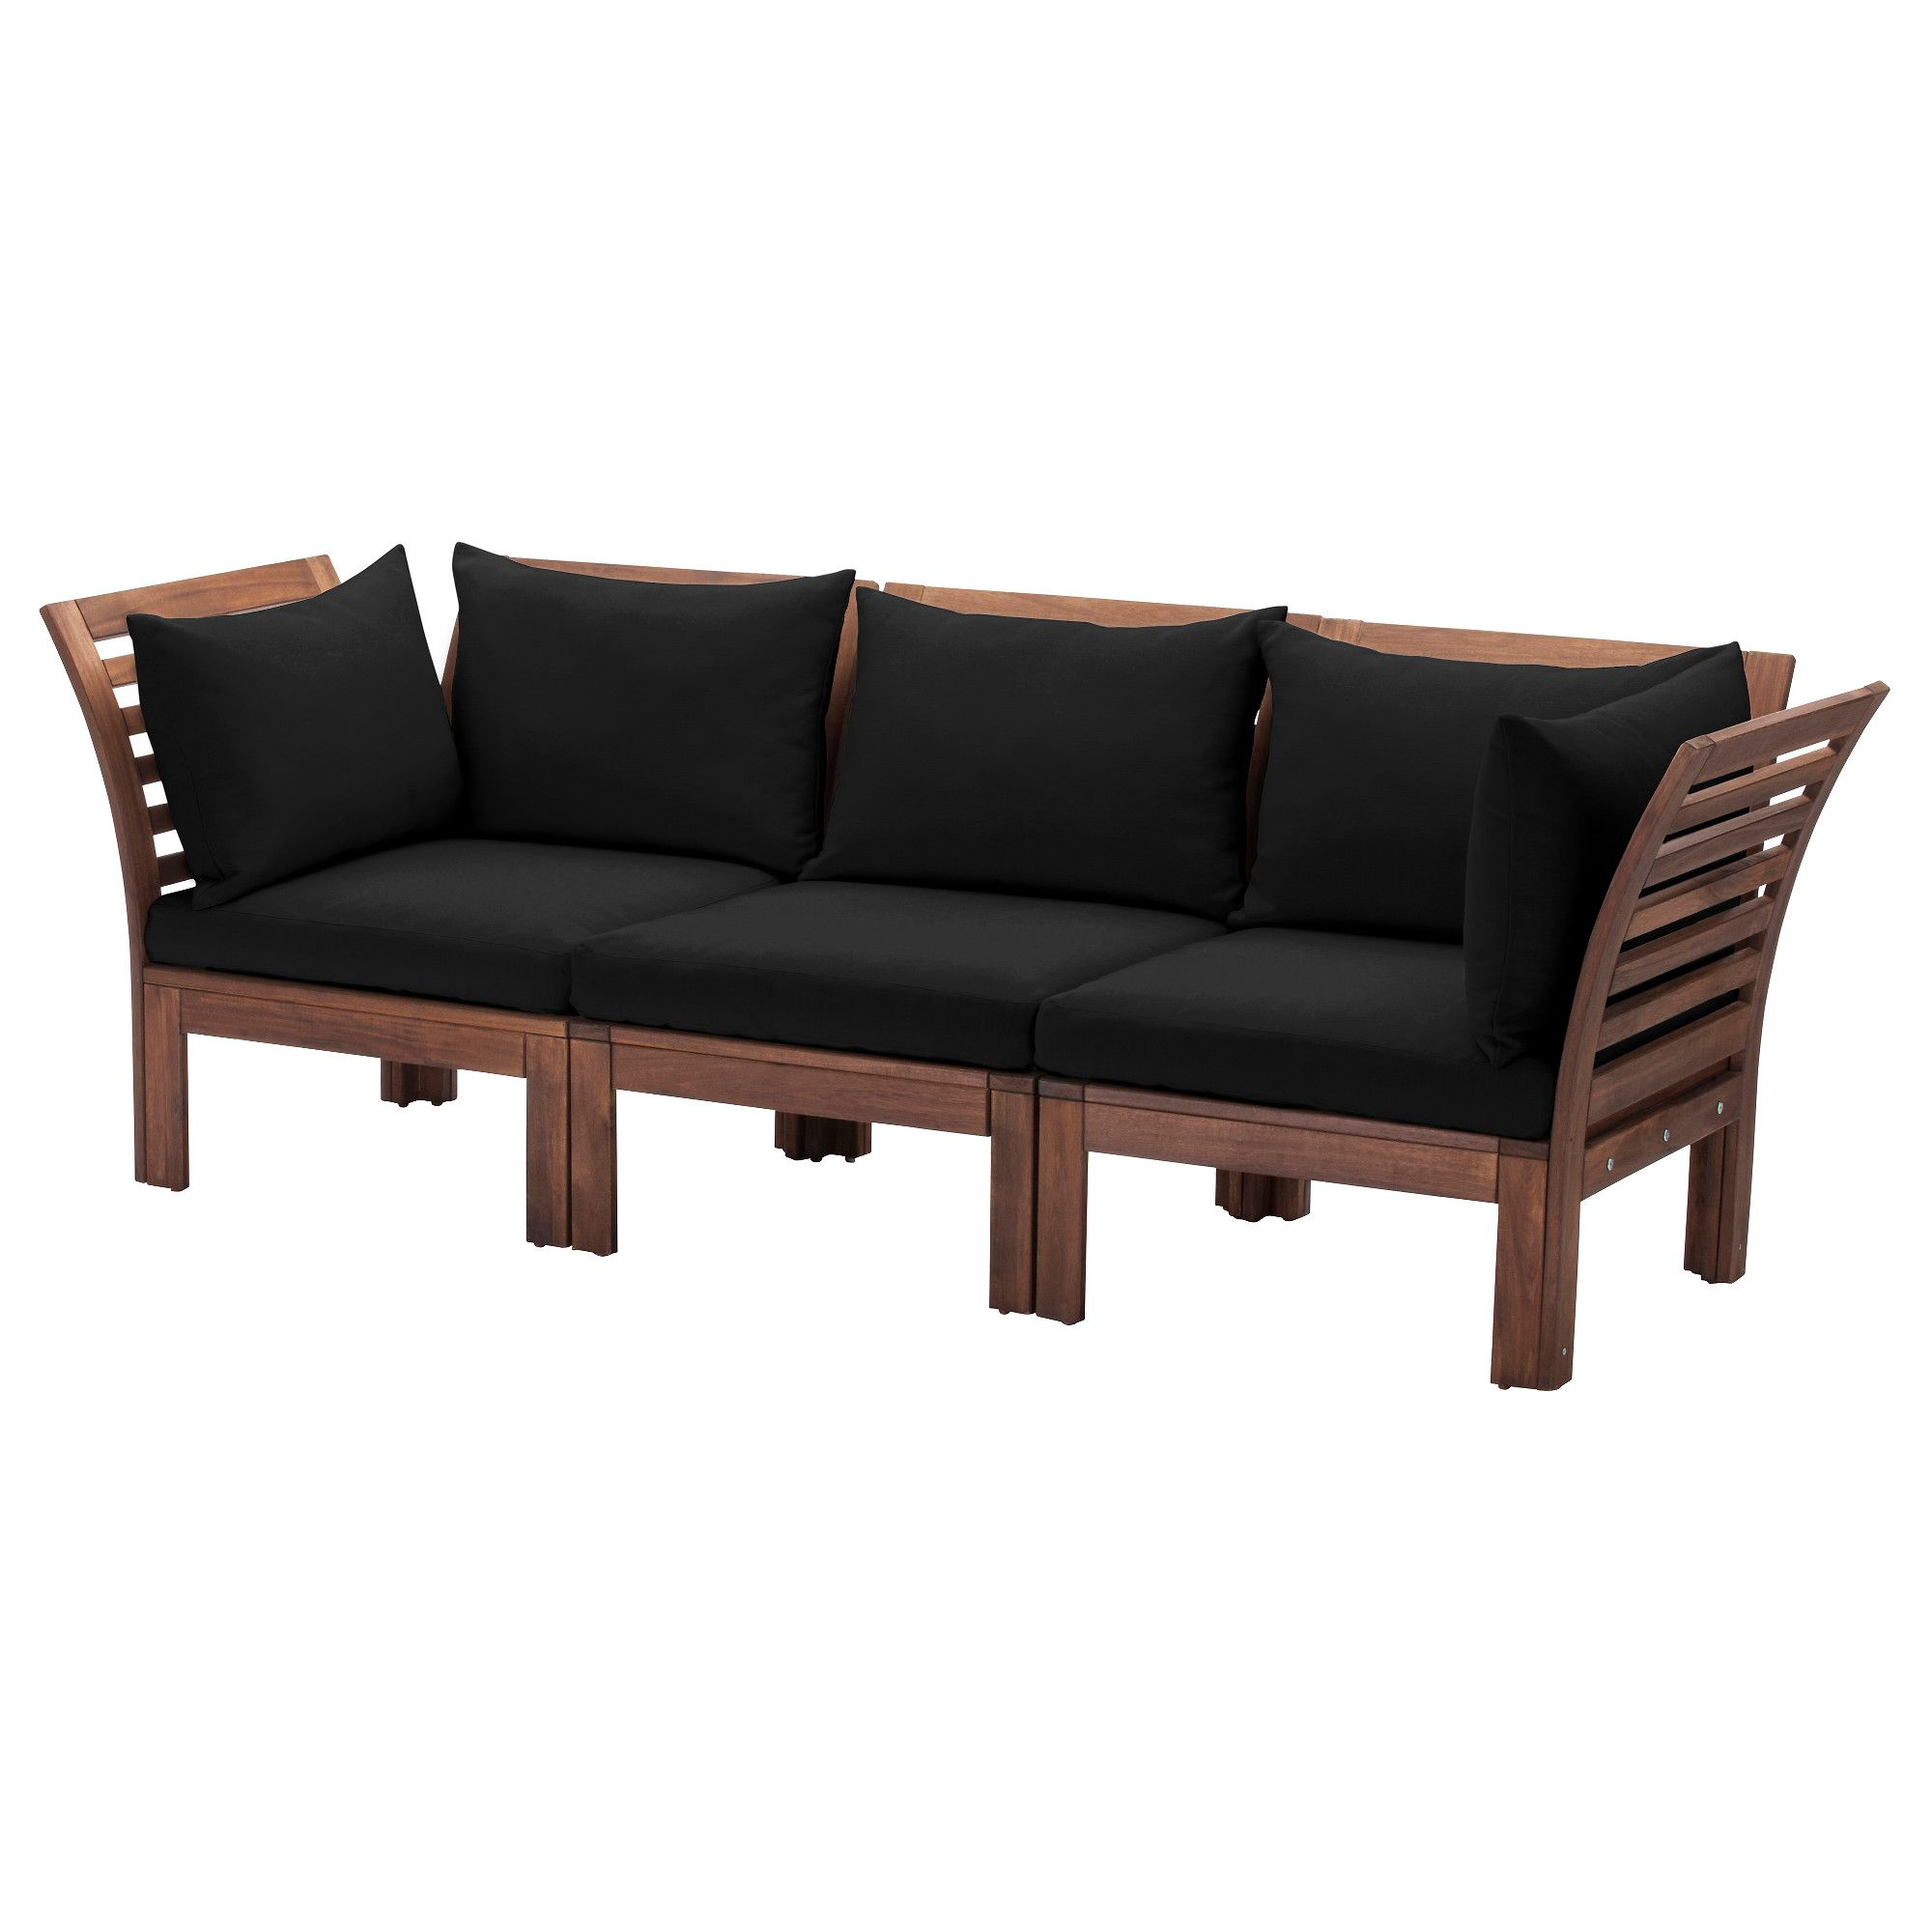 IKEA   ÄPPLARÖ, Sofa, Outdoor, Brown Stained/Hållö Black , By Combining  Different Seating Sections You Can Create A Sofa In A Shape And Size That  Perfectly ...